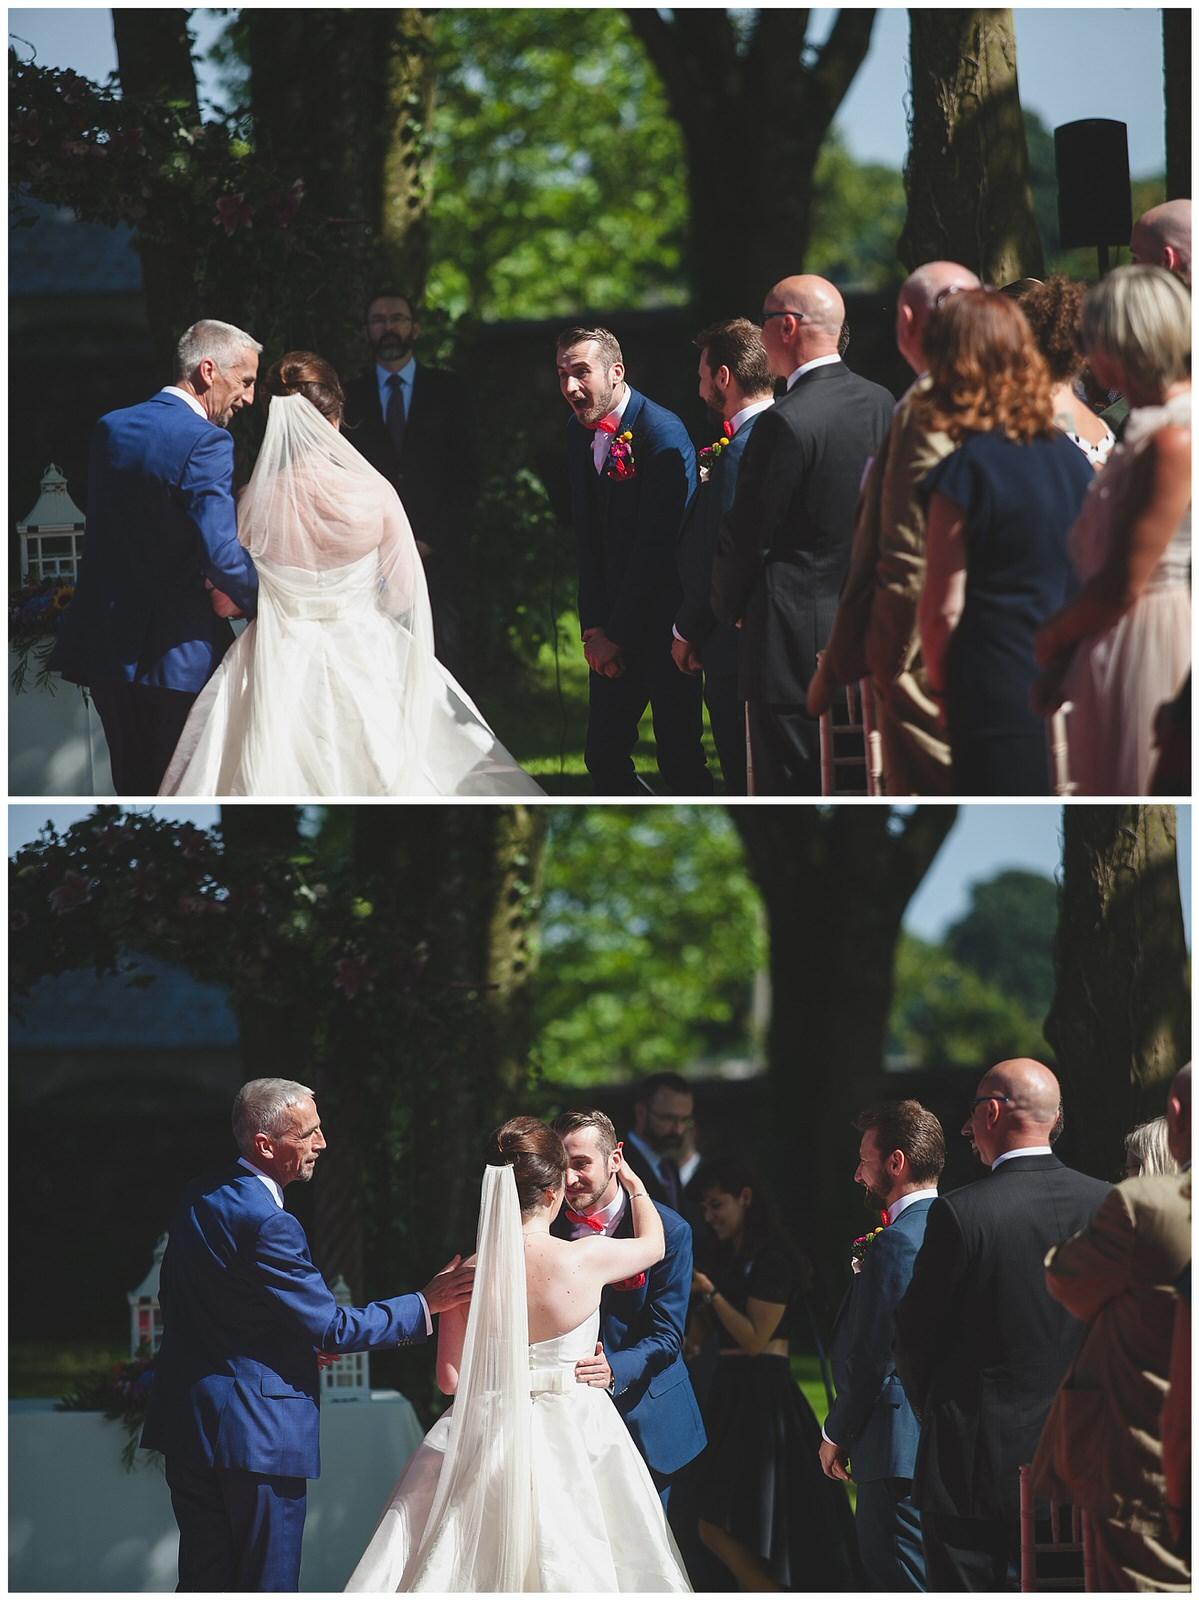 Groom has the best reaction ever after seeing his bride arrive